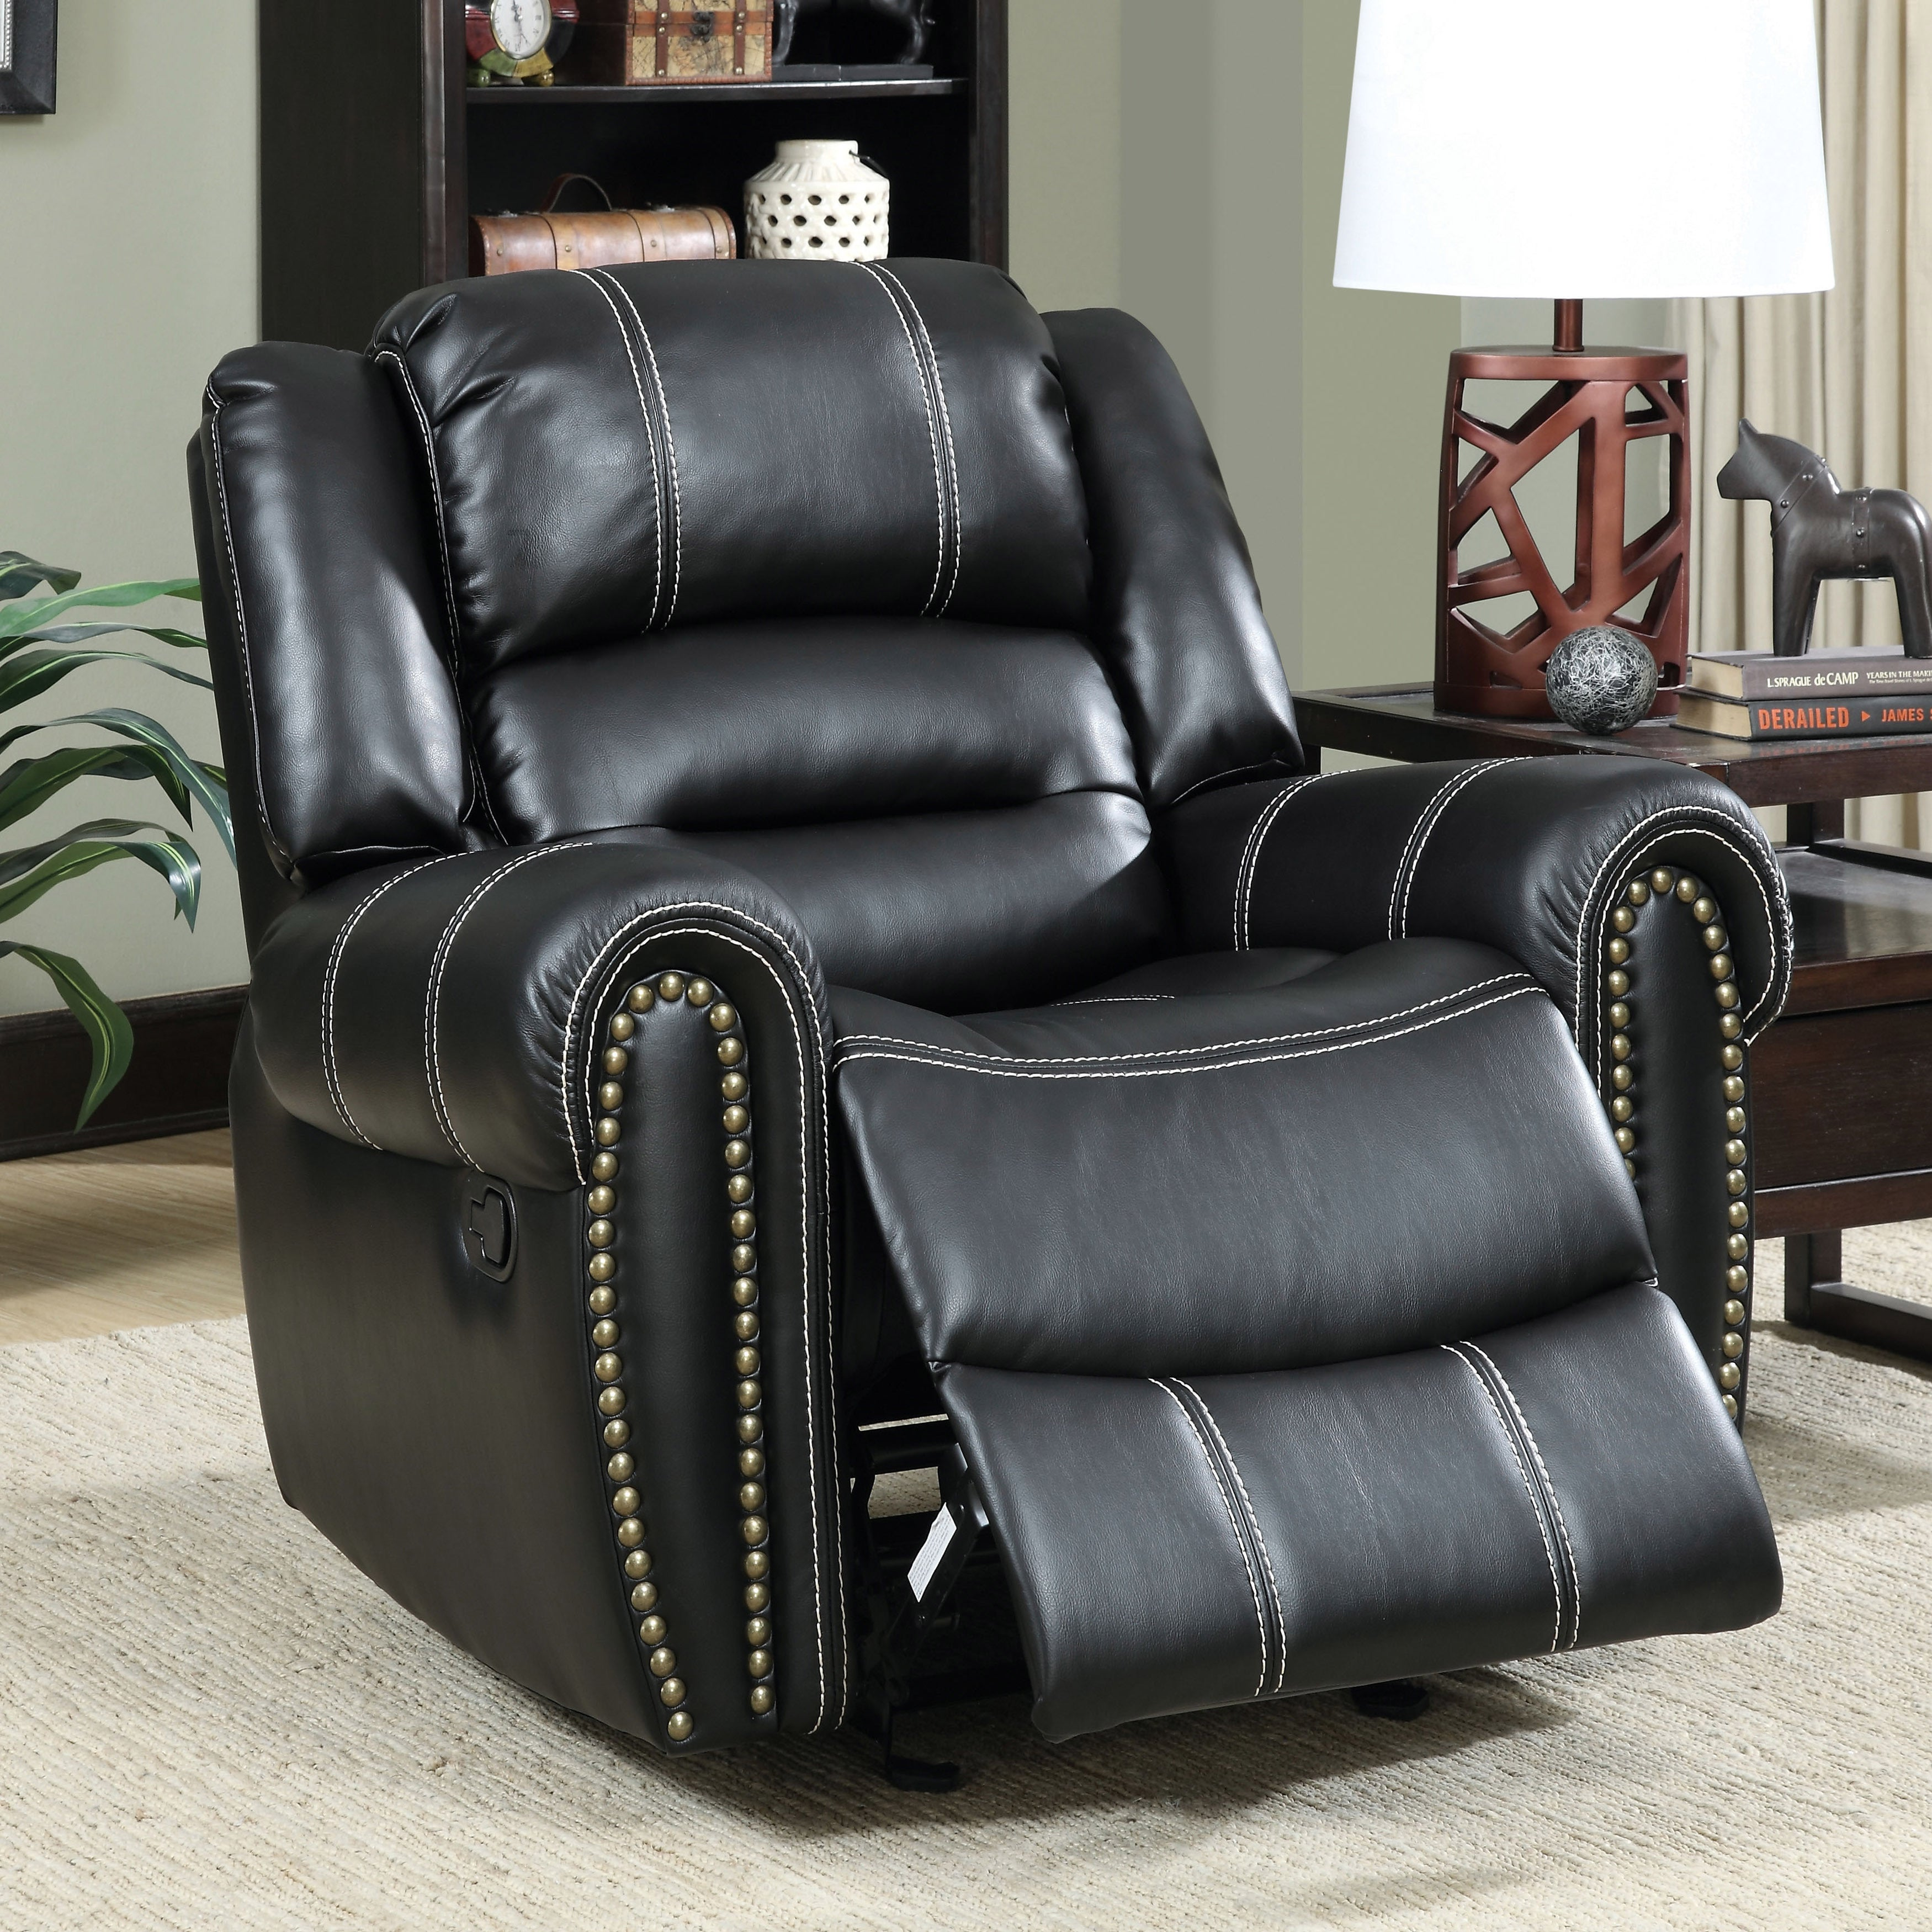 Buy Recliner Chairs u0026 Rocking Recliners Sale